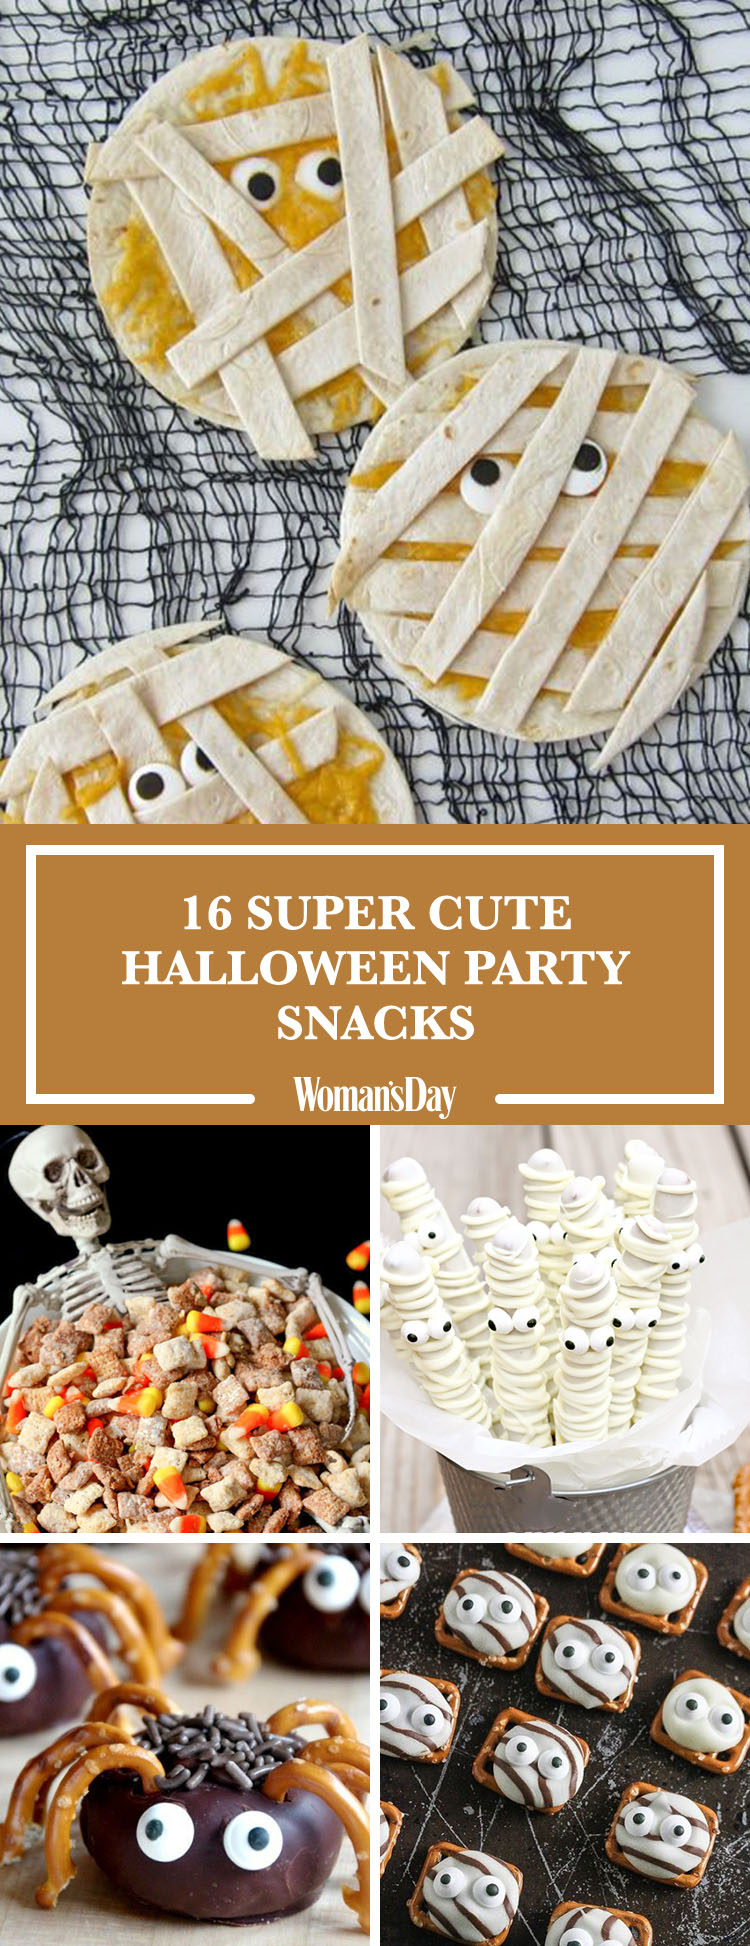 25 easy halloween party snacks ideas and recipes for halloween snacks. Black Bedroom Furniture Sets. Home Design Ideas